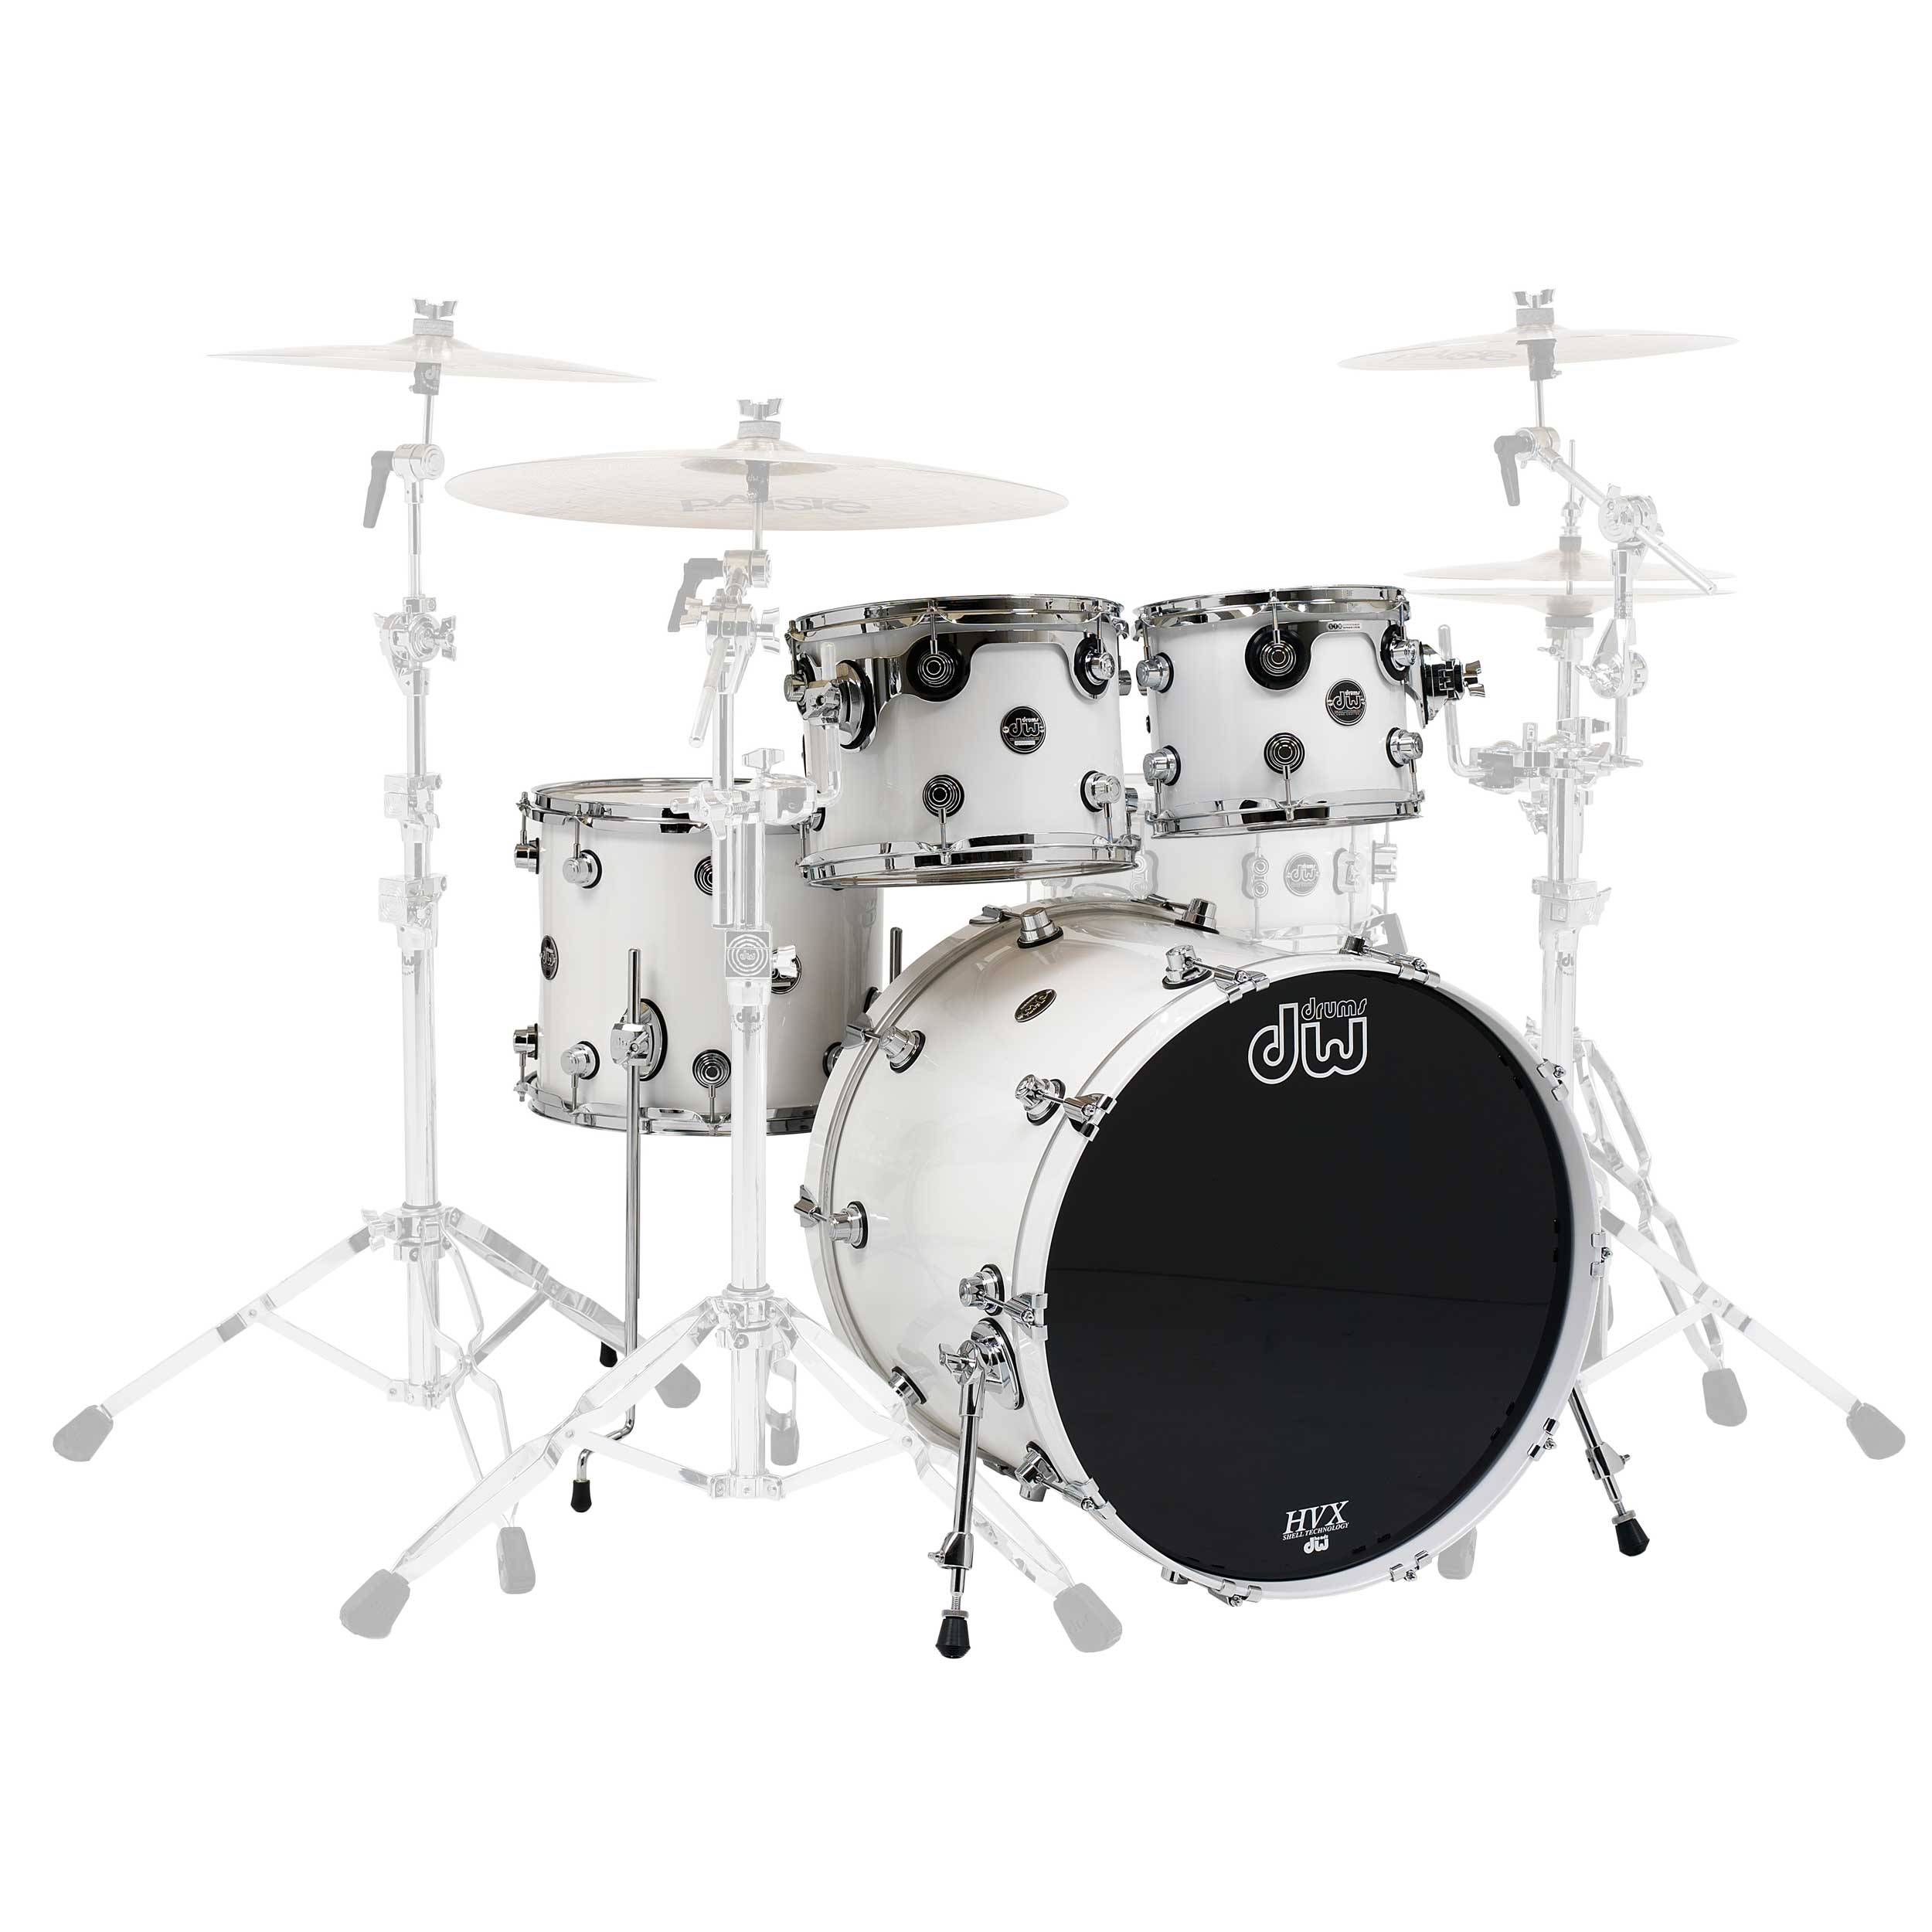 "DW Performance Series 4-Piece Drum Set Shell Pack (22"" Bass, 10/12/16"" Toms) in White Ice"